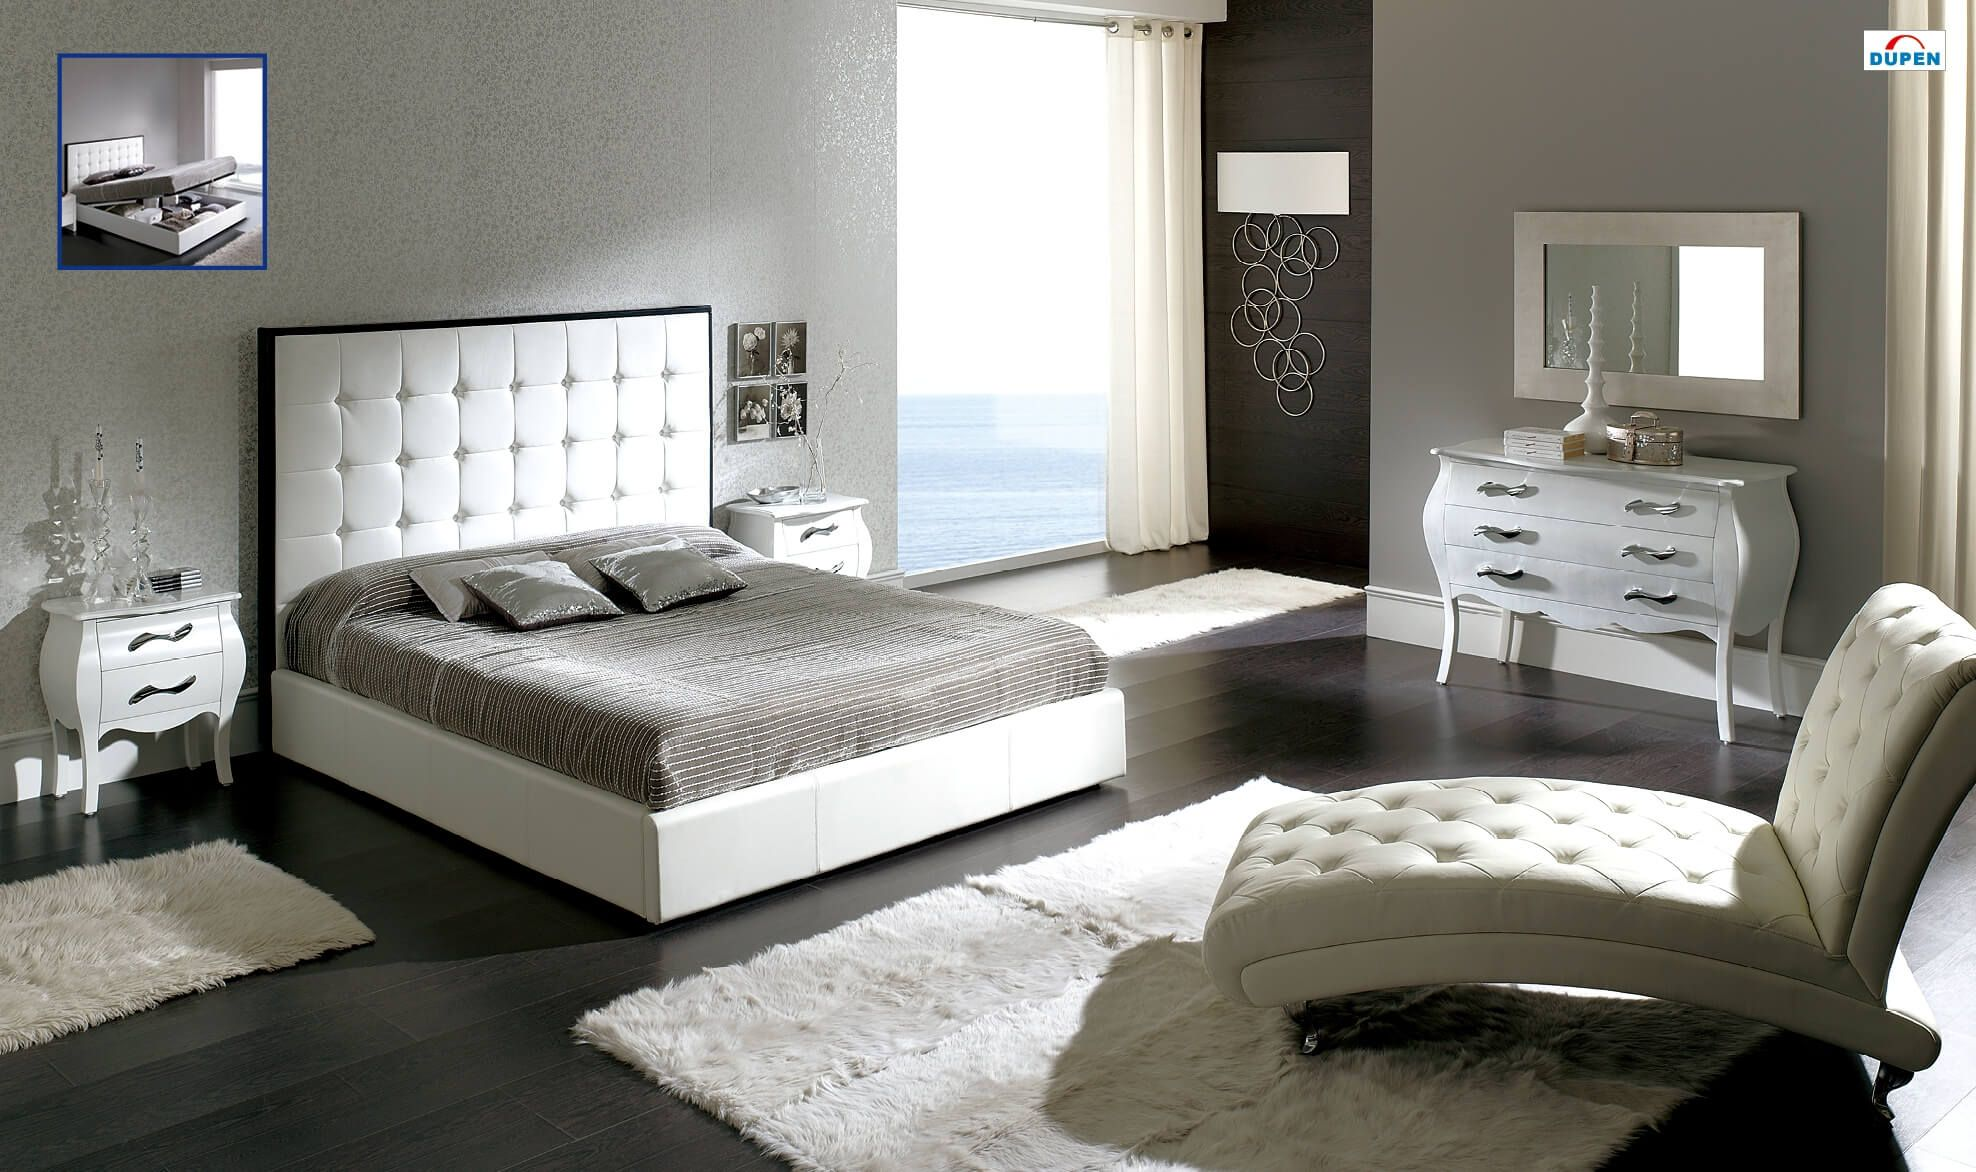 10 Best Bedroom Chair Designs To Add Abstract Interior Look